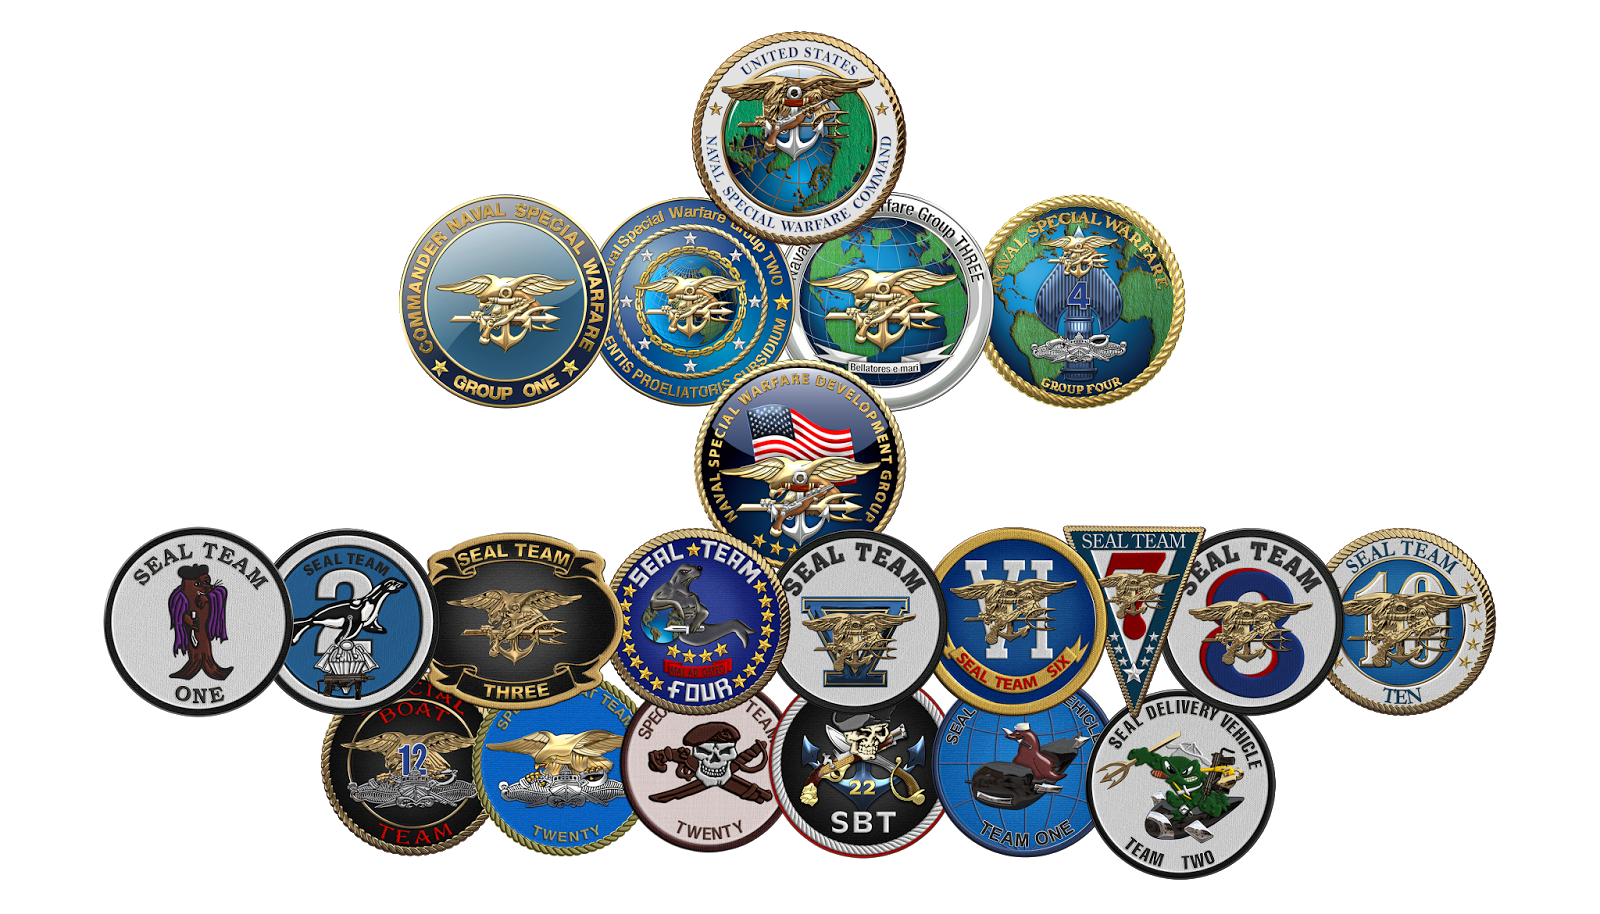 Military Insignia 3D : Naval Special Warfare Command - NSWC ...